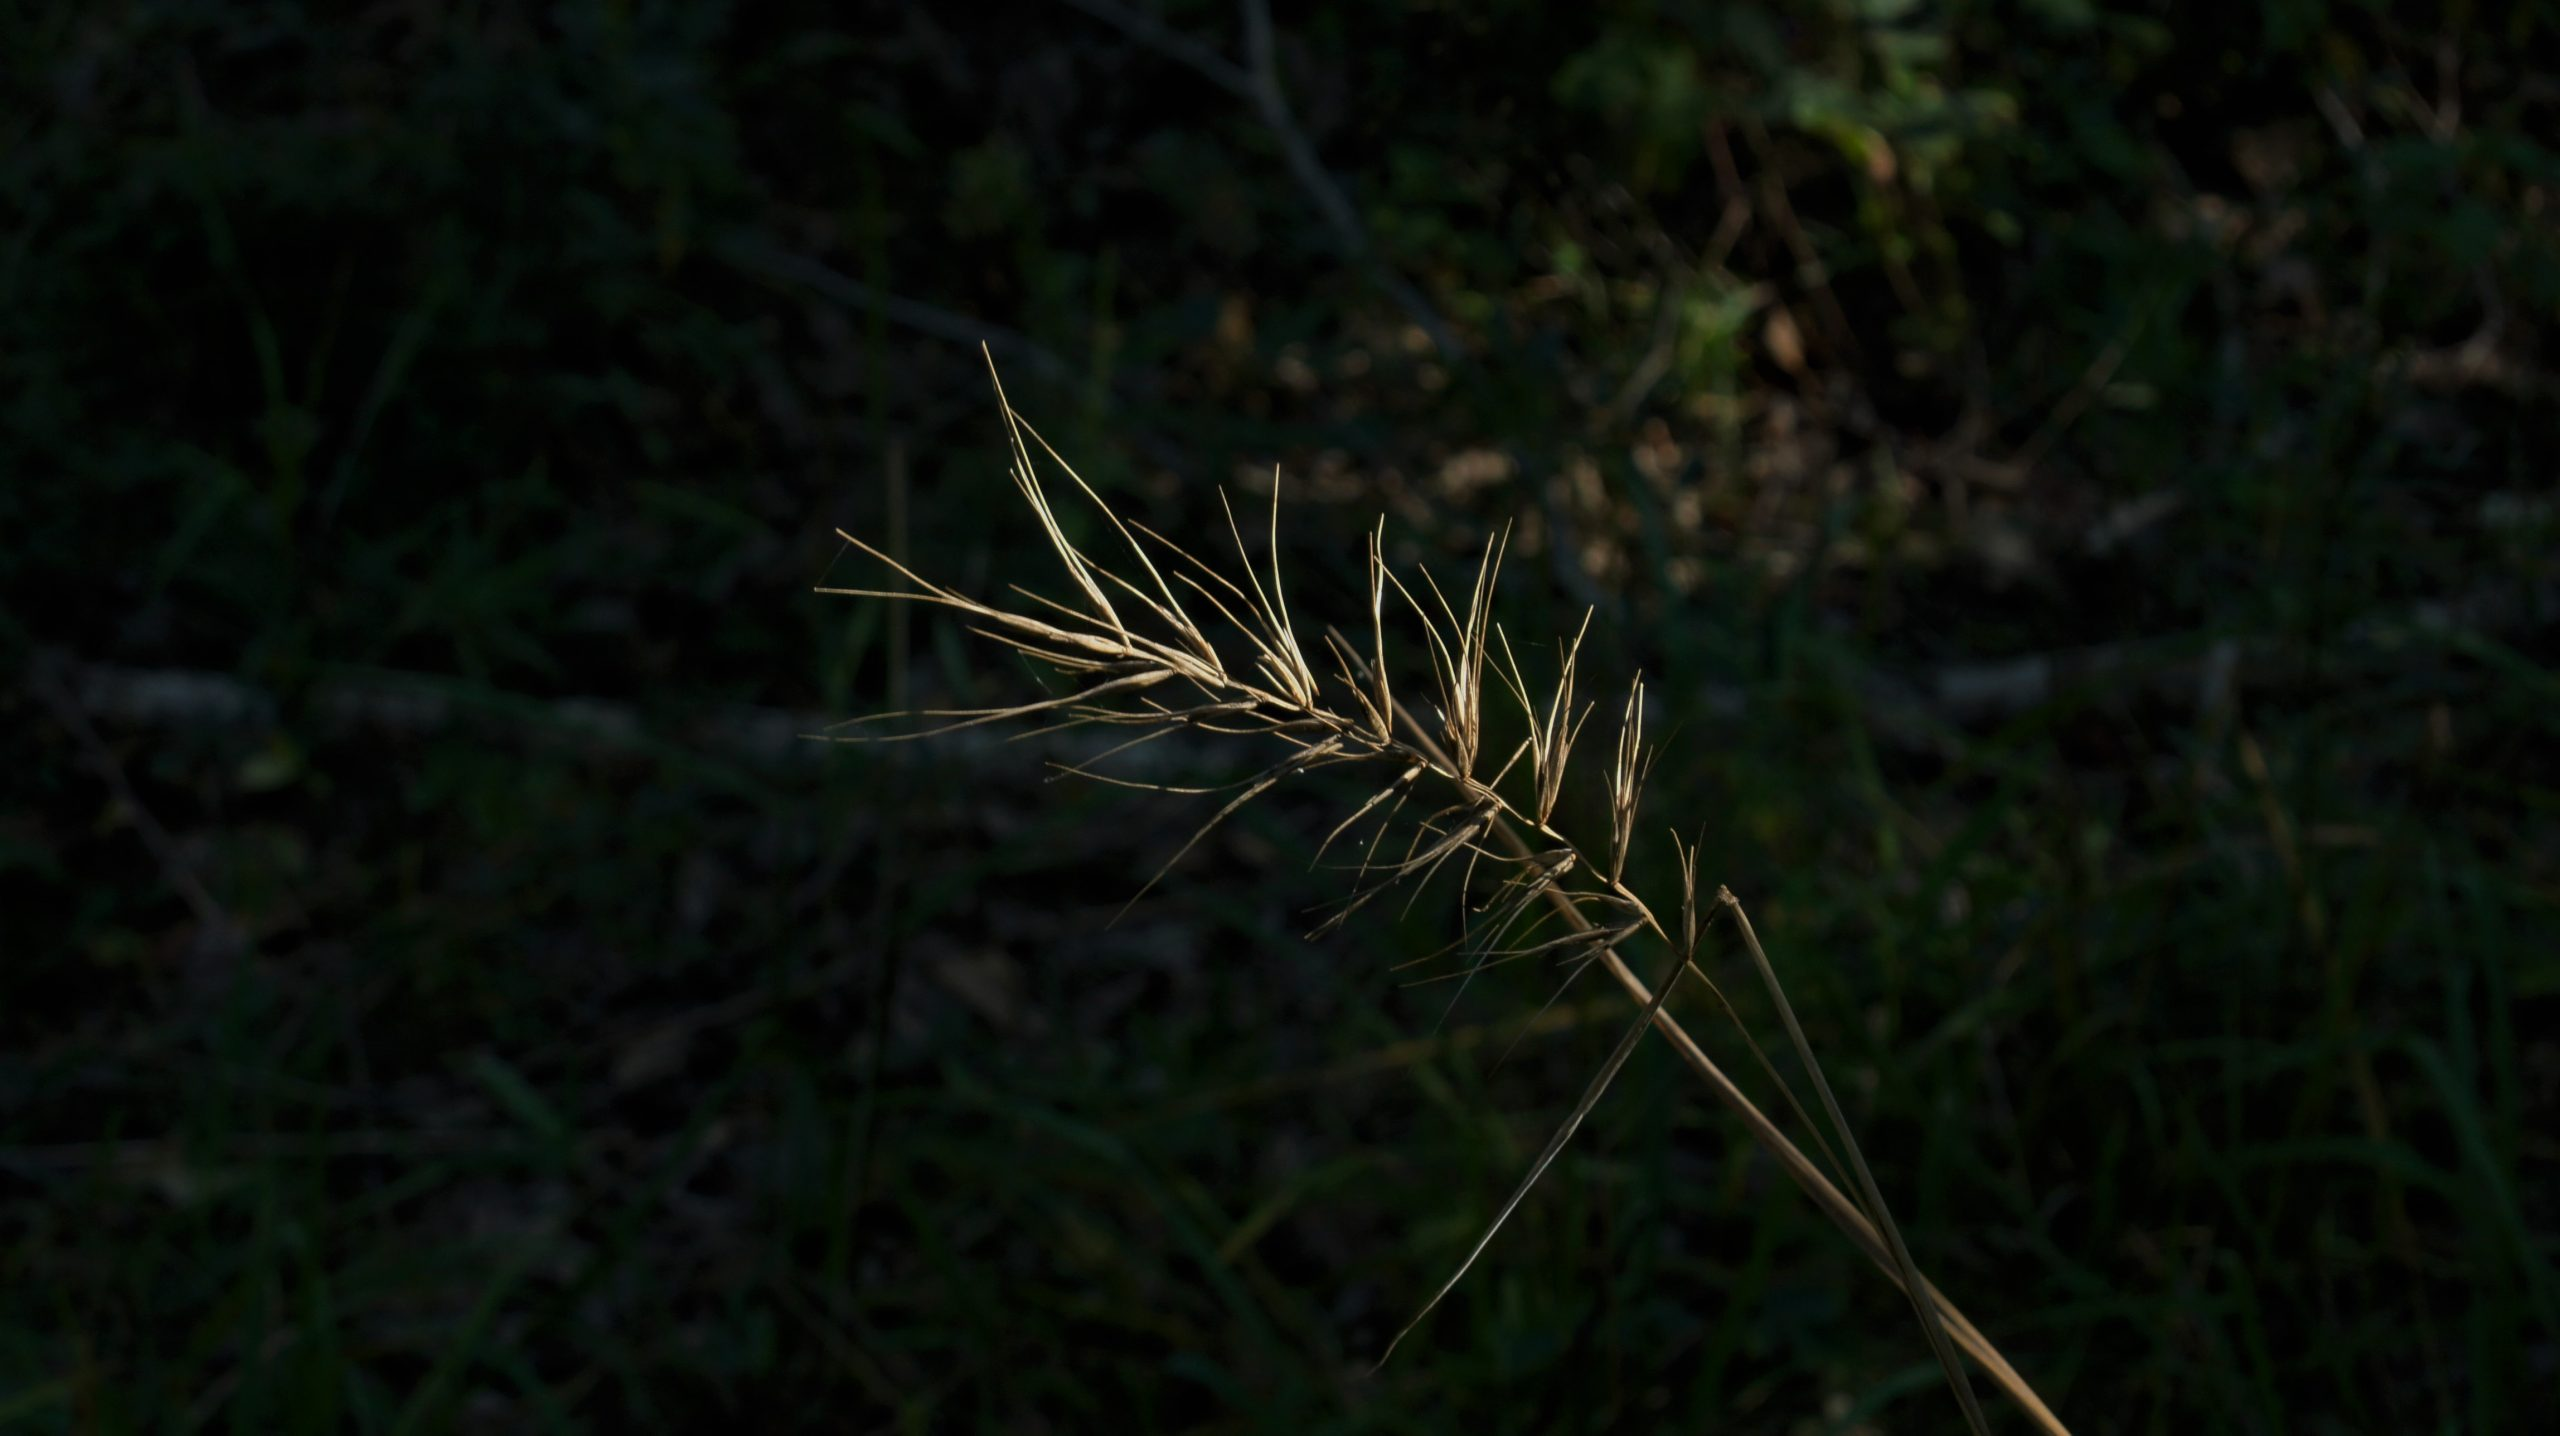 Church's wild rye, Elymus churchii, collected for the Millennial Seed Bank banking project.